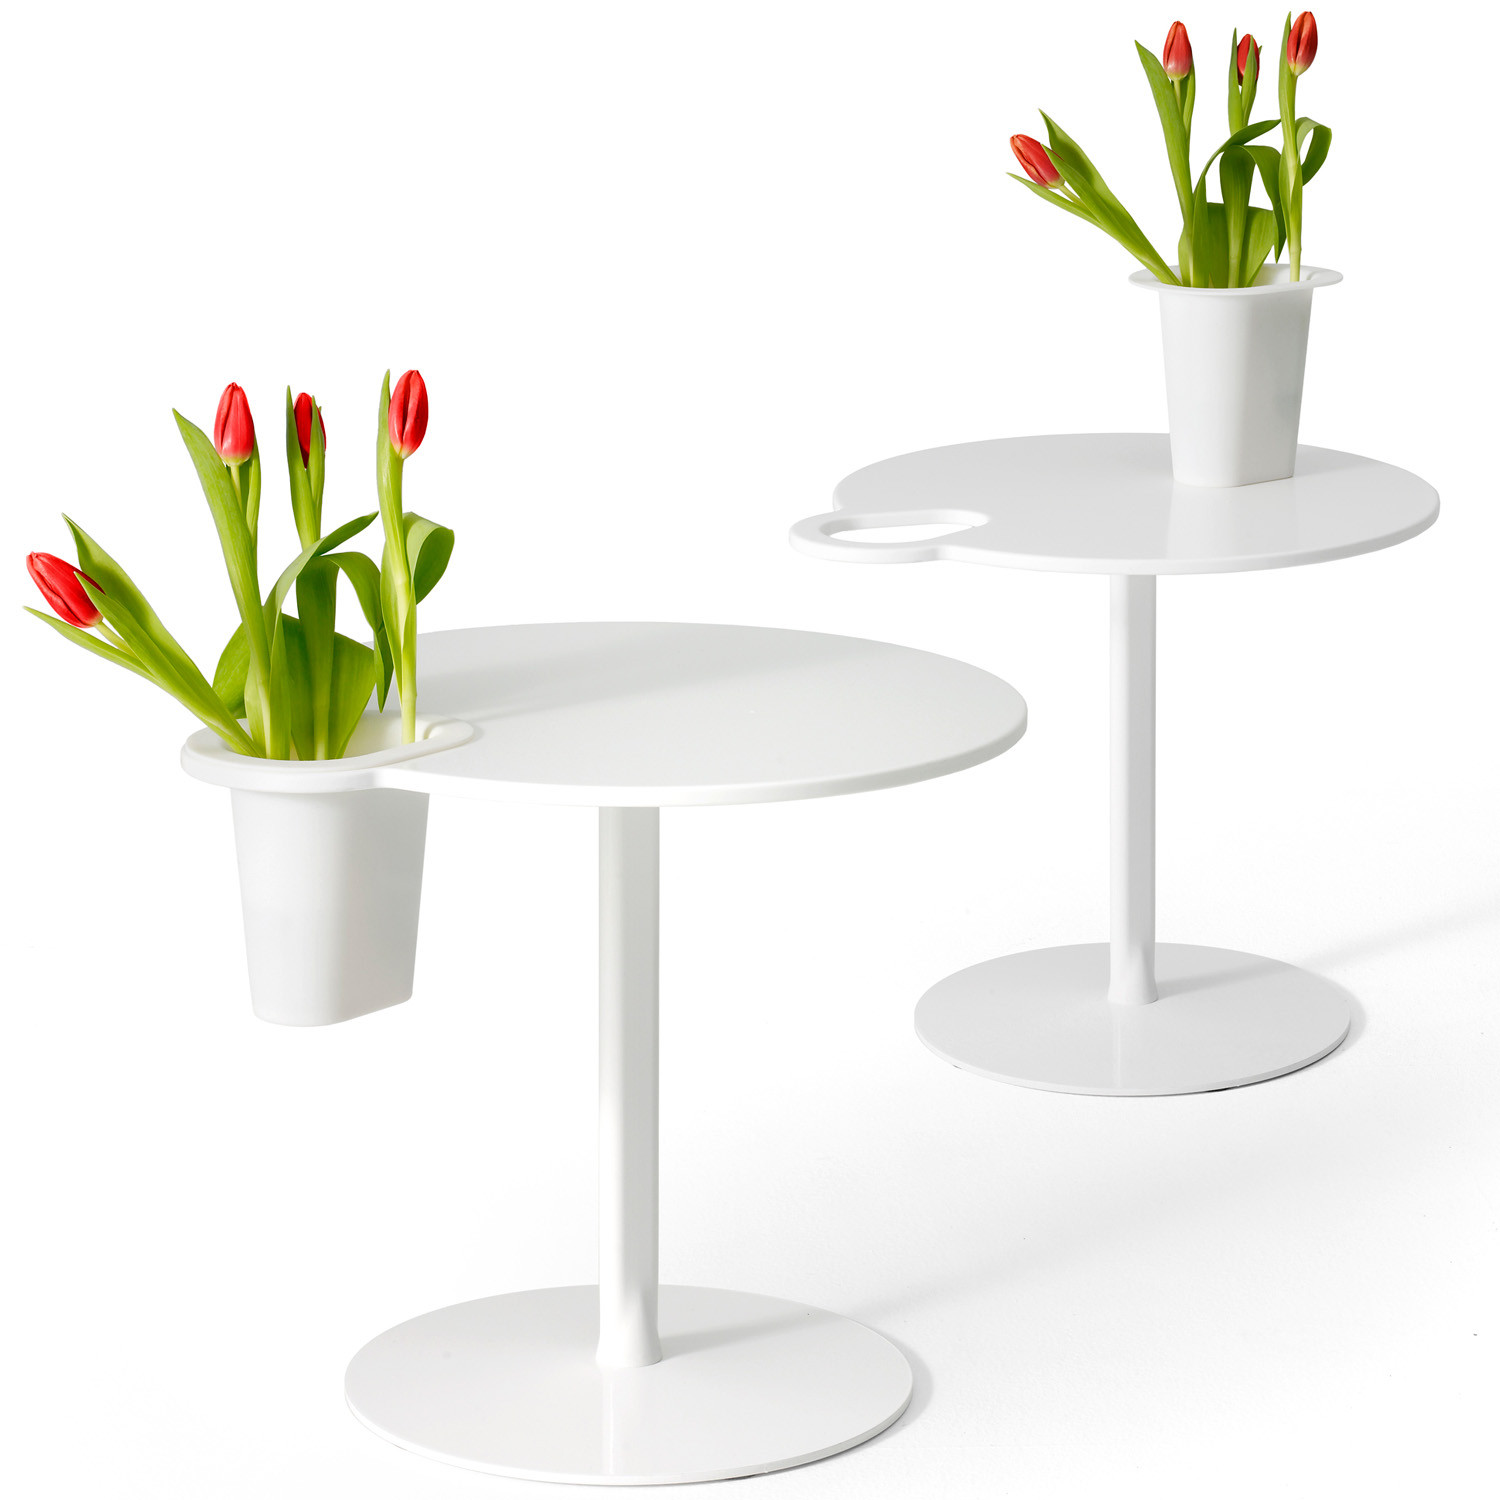 Grip Low Tables by Offecct